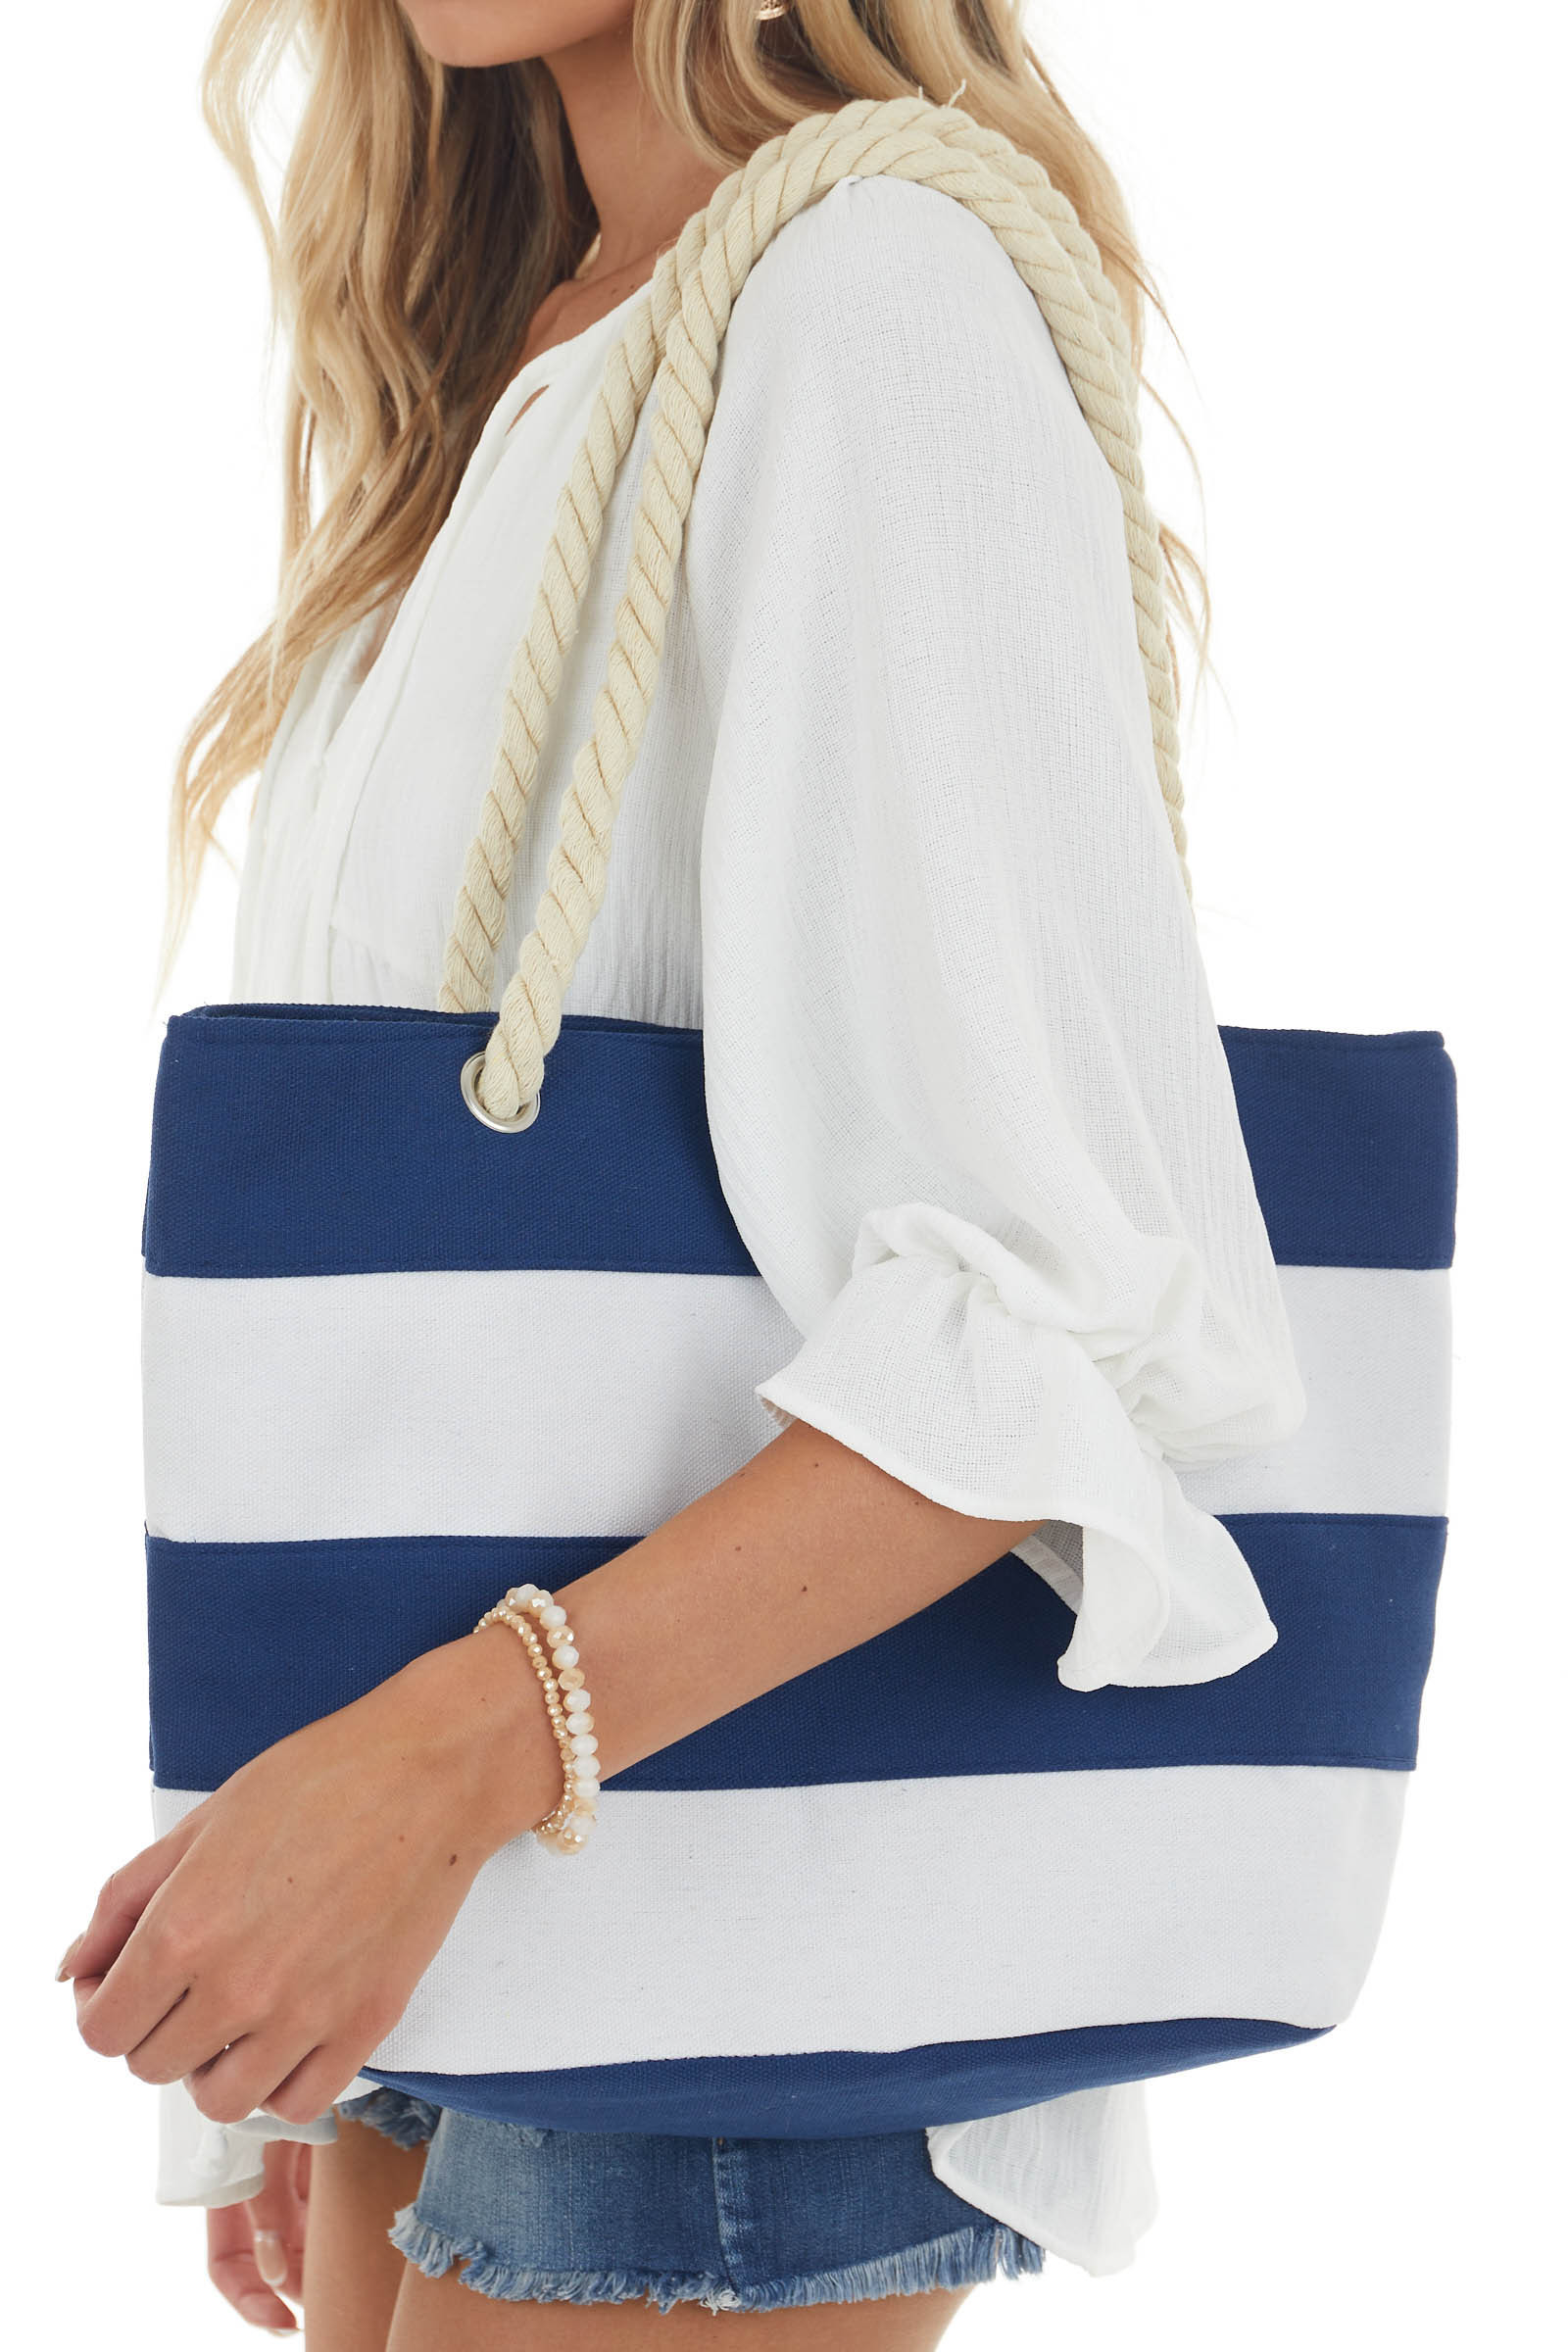 Catalina Blue and White Striped Tote Bag